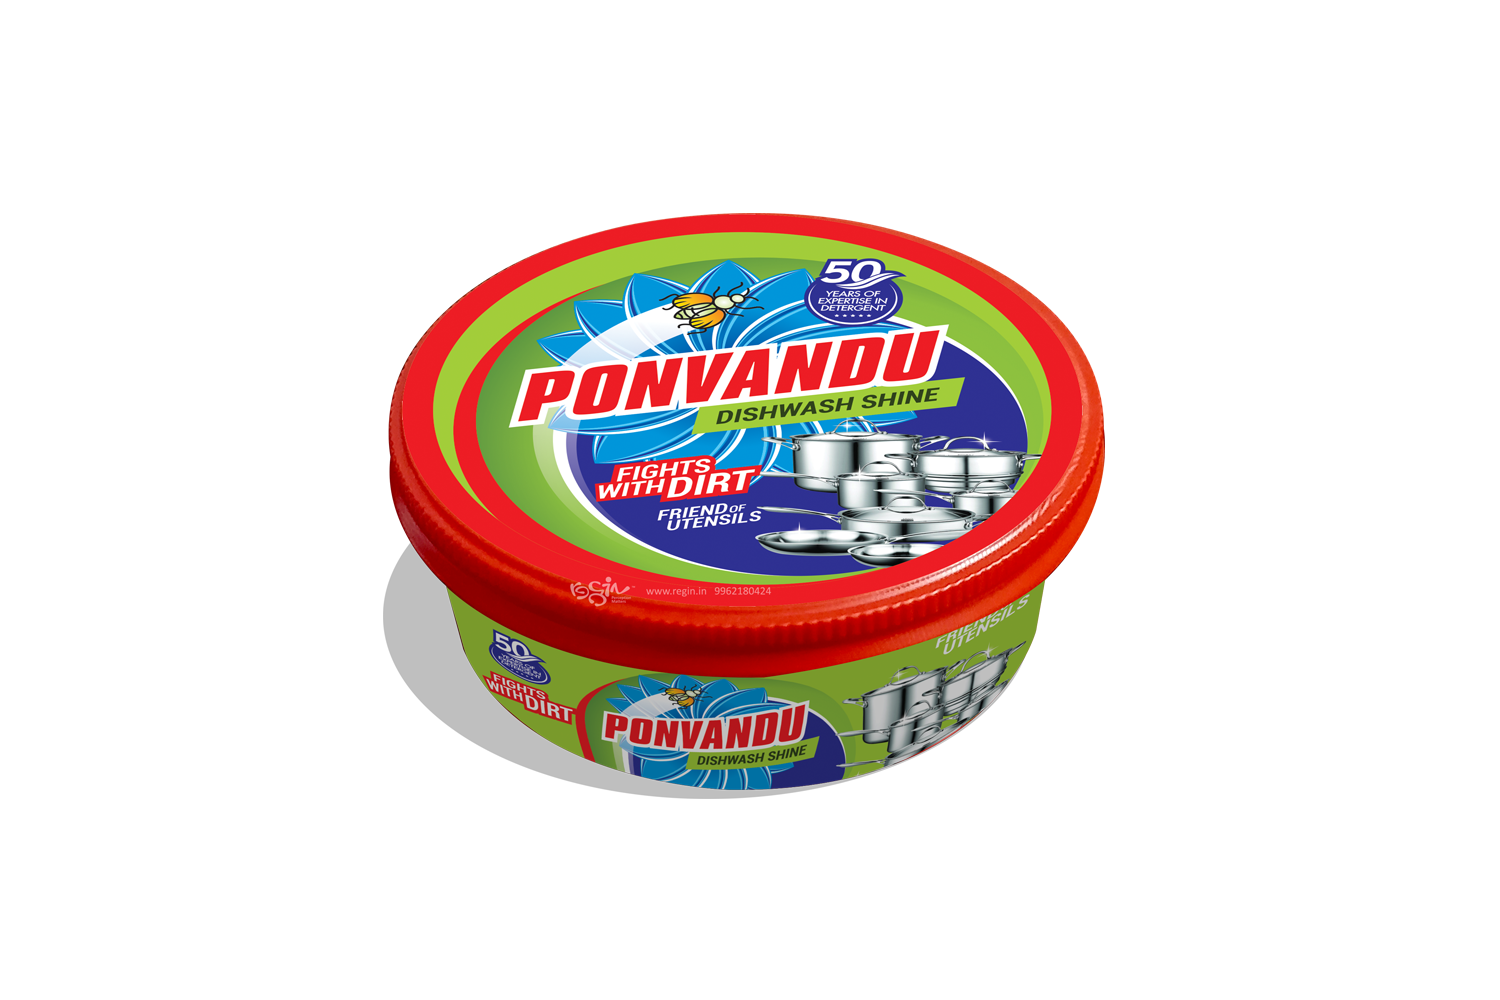 Ponvandu Dishwash bar